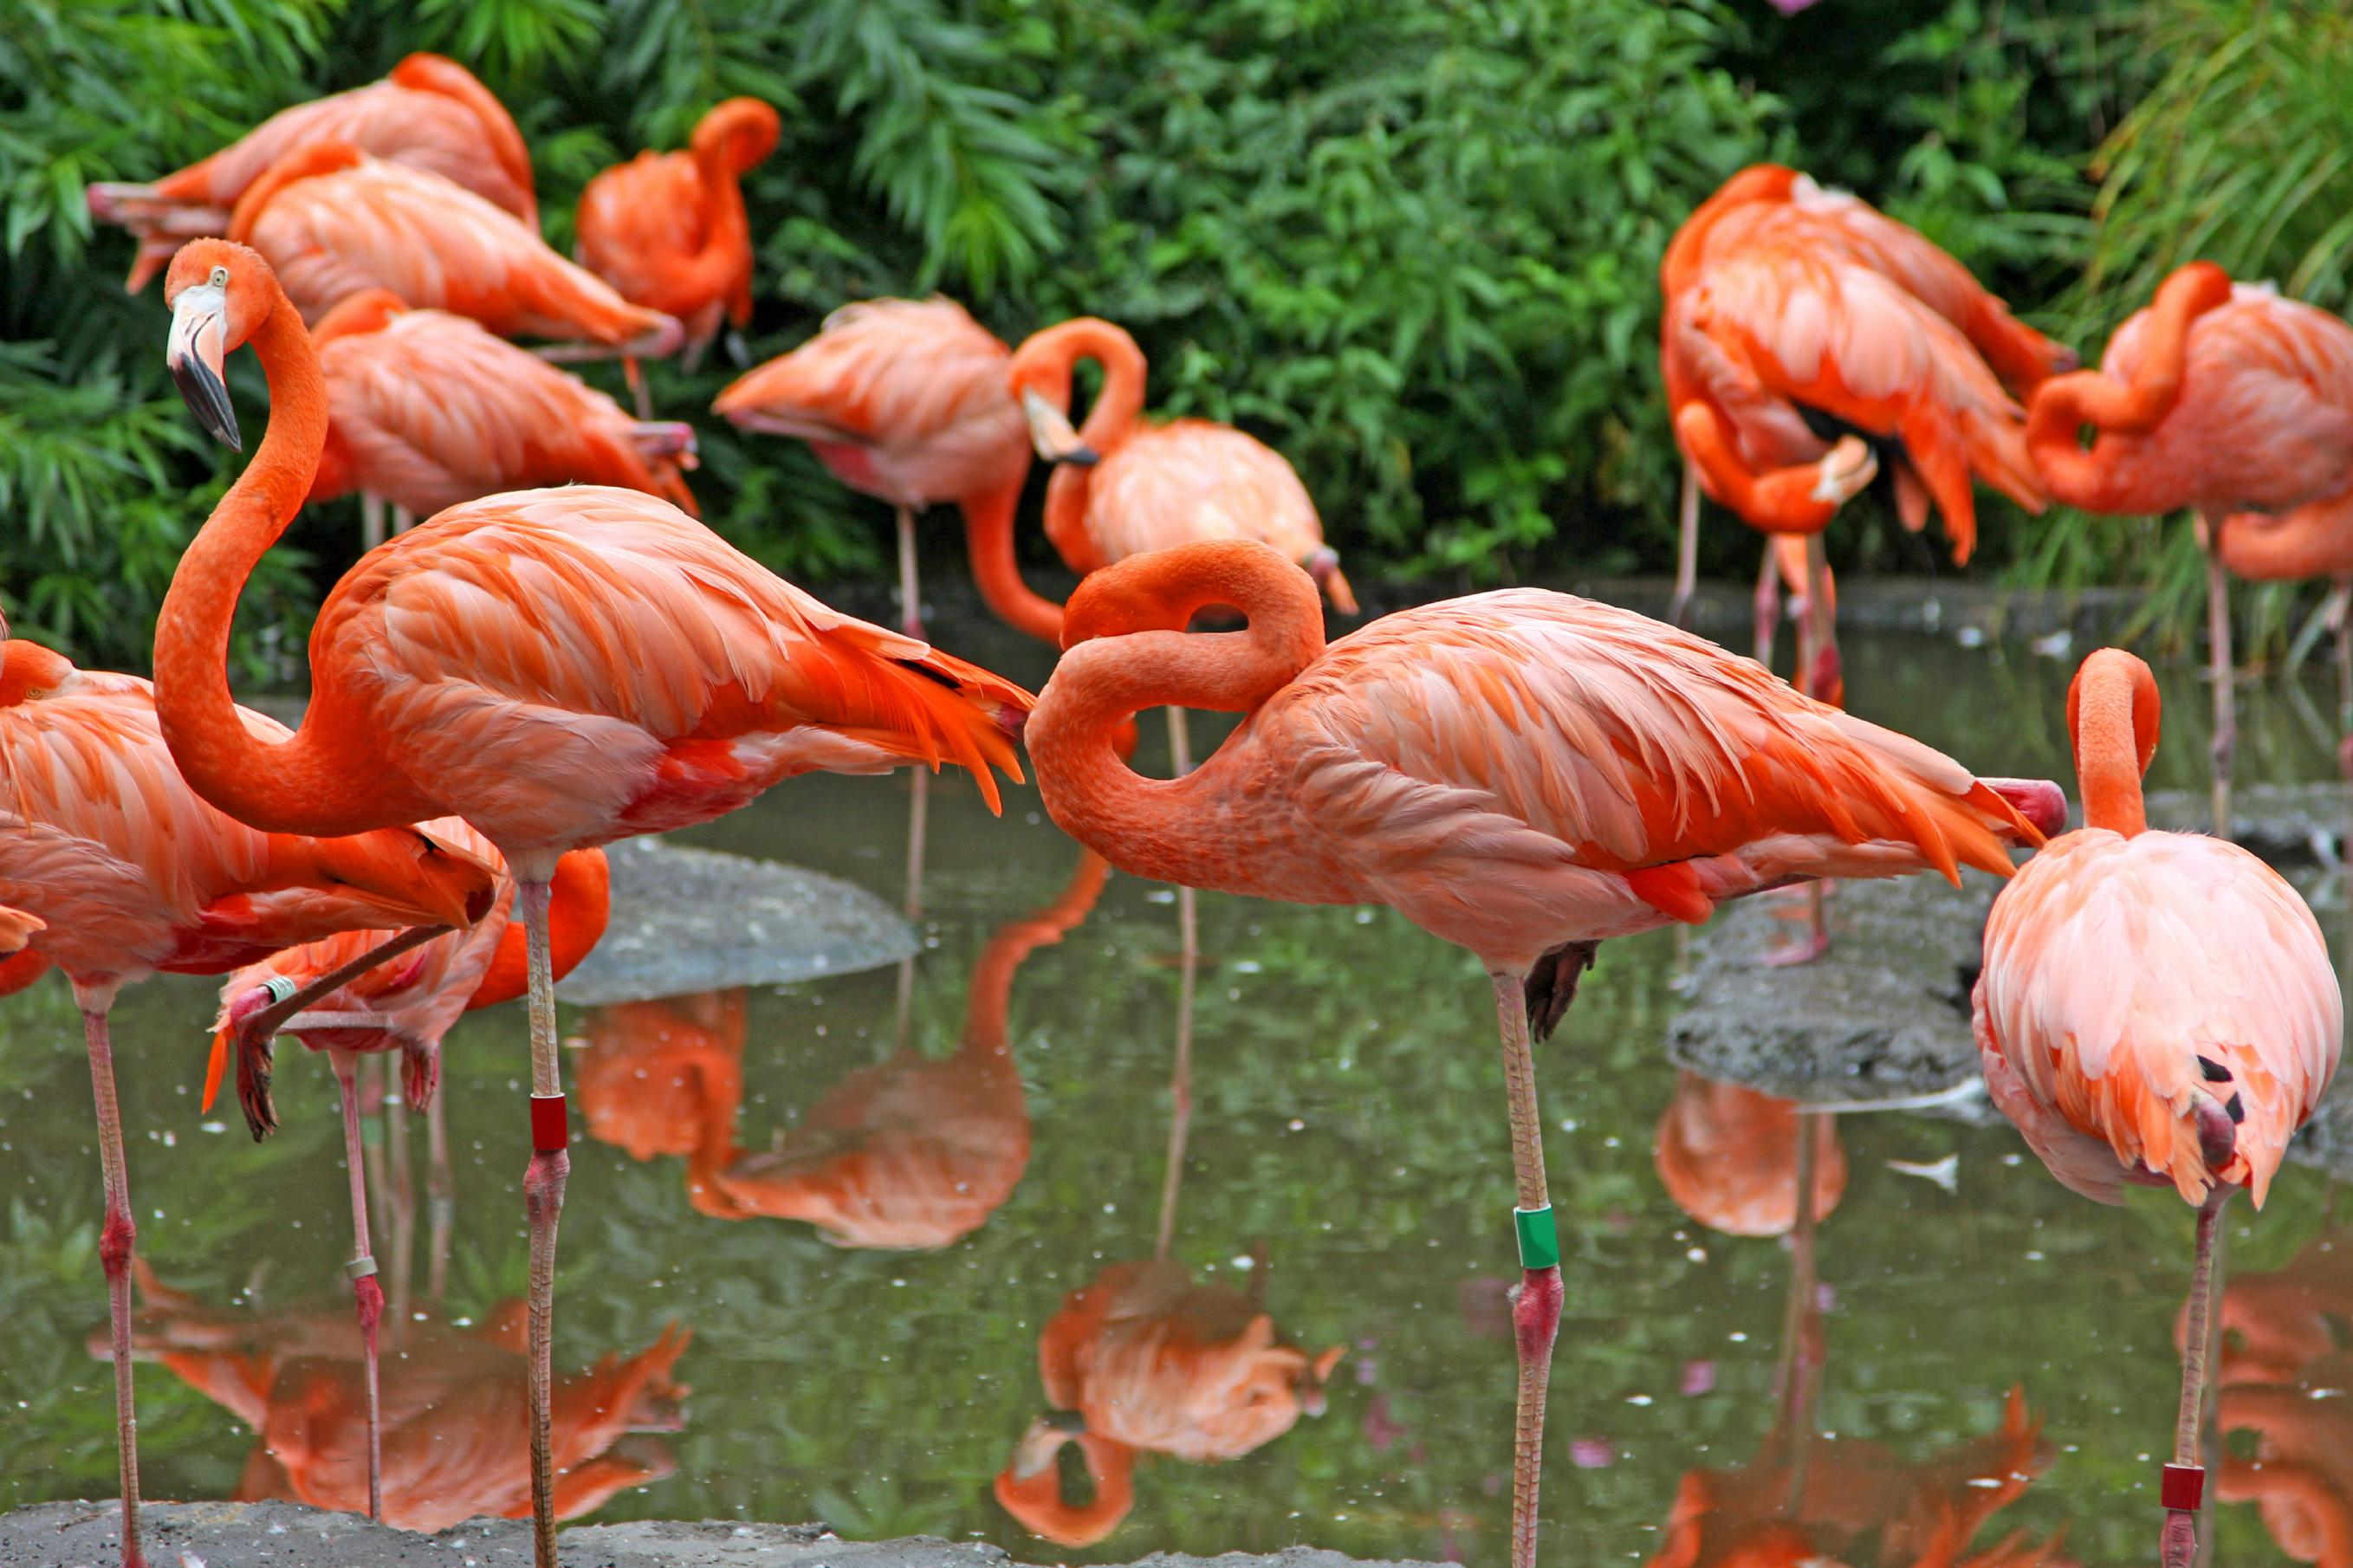 Flamingo Group on One Leg